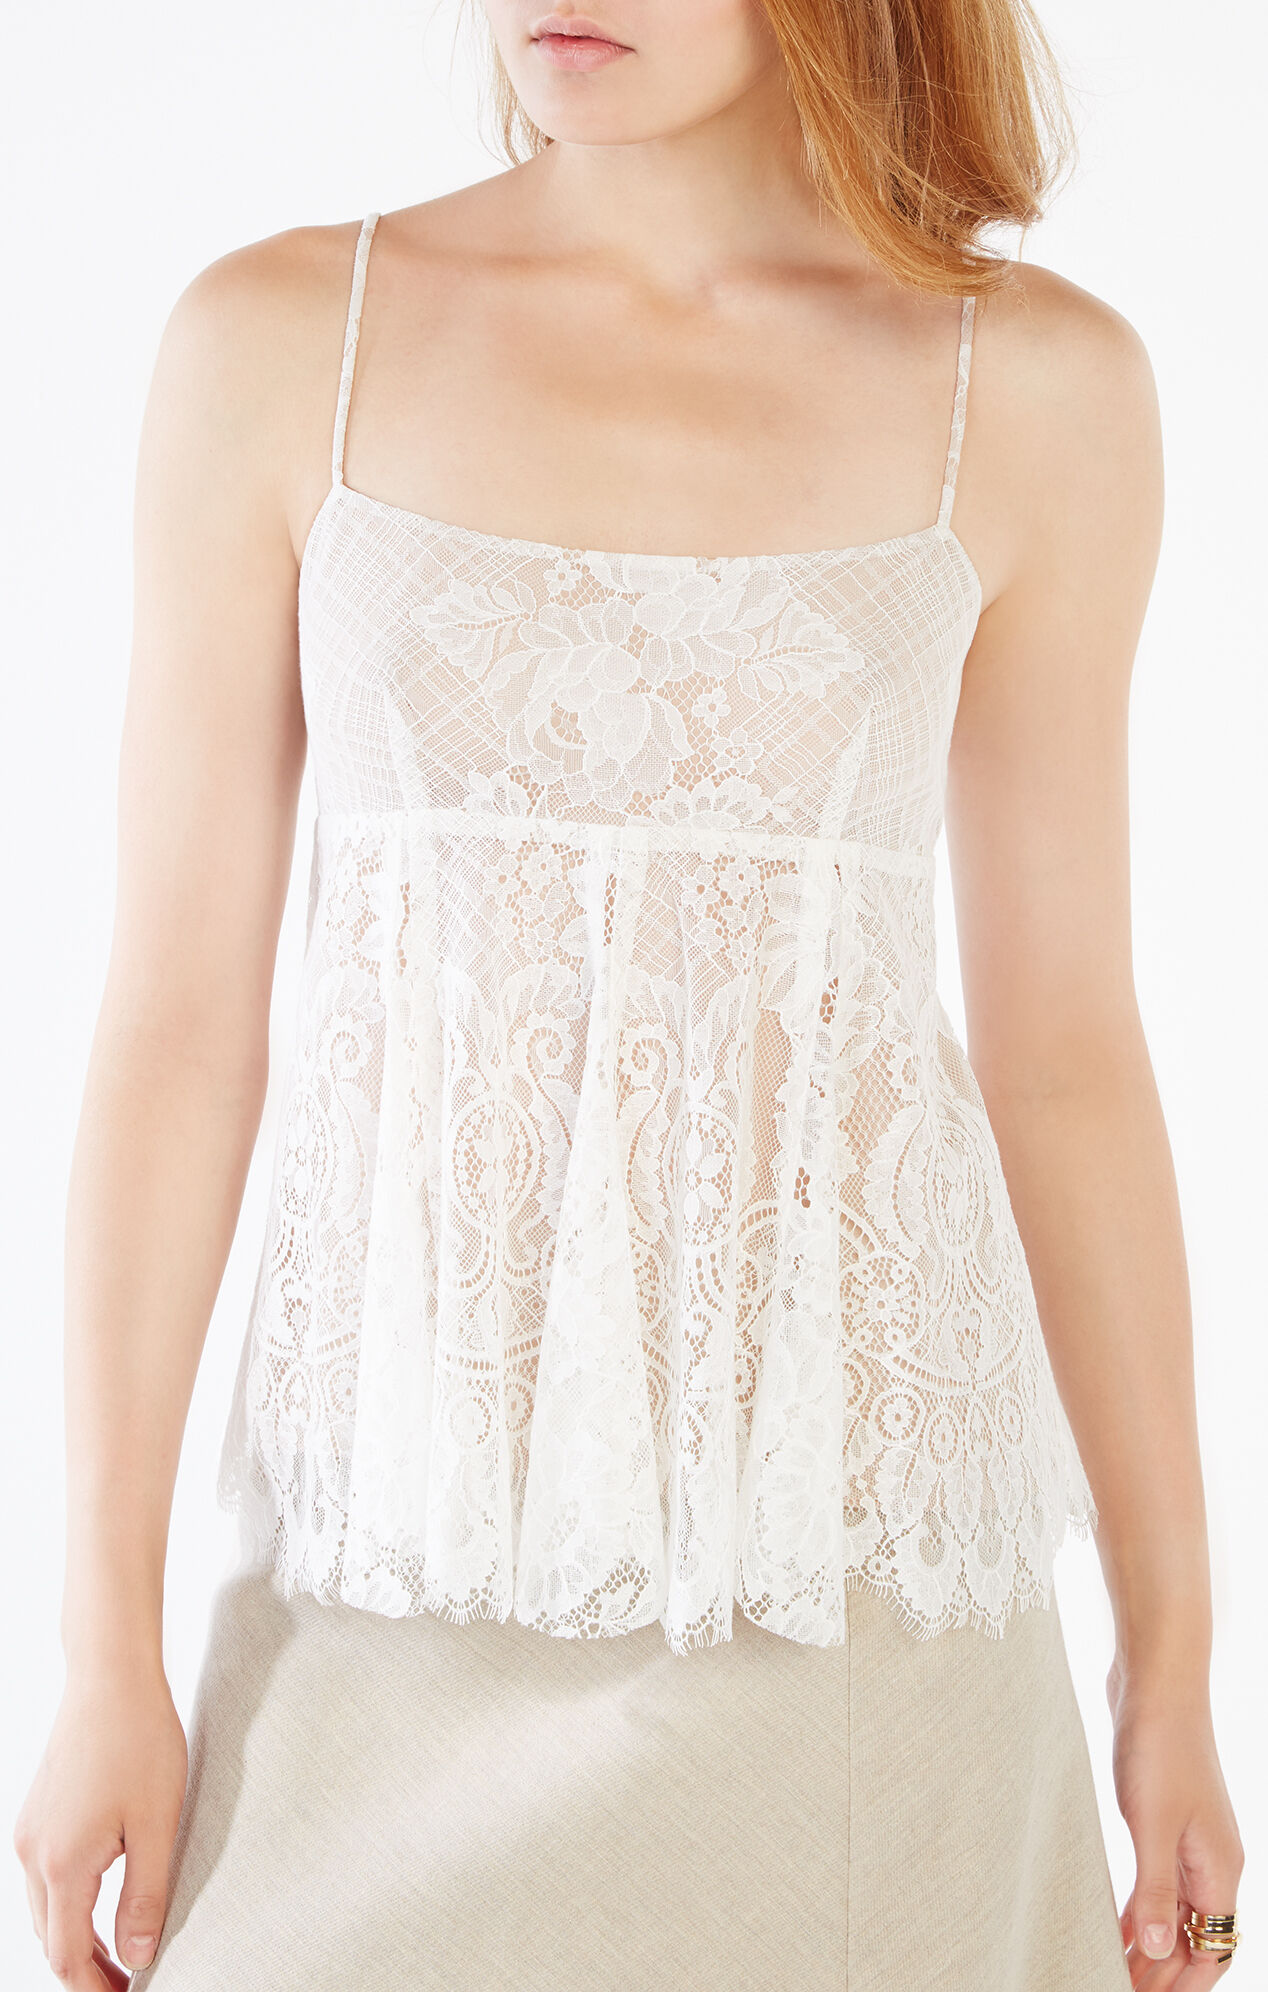 Find lace camisole tops at ShopStyle. Shop the latest collection of lace camisole tops from the most popular stores - all in one place. Get a Sale Alert Get a Sale Alert at Neiman Marcus Tanya Taylor Gia Floral-Print Lace Cami Top $ Get a Sale Alert at H&M H&M Satin and Lace Camisole Top - White $ Get a Sale Alert at H&M .